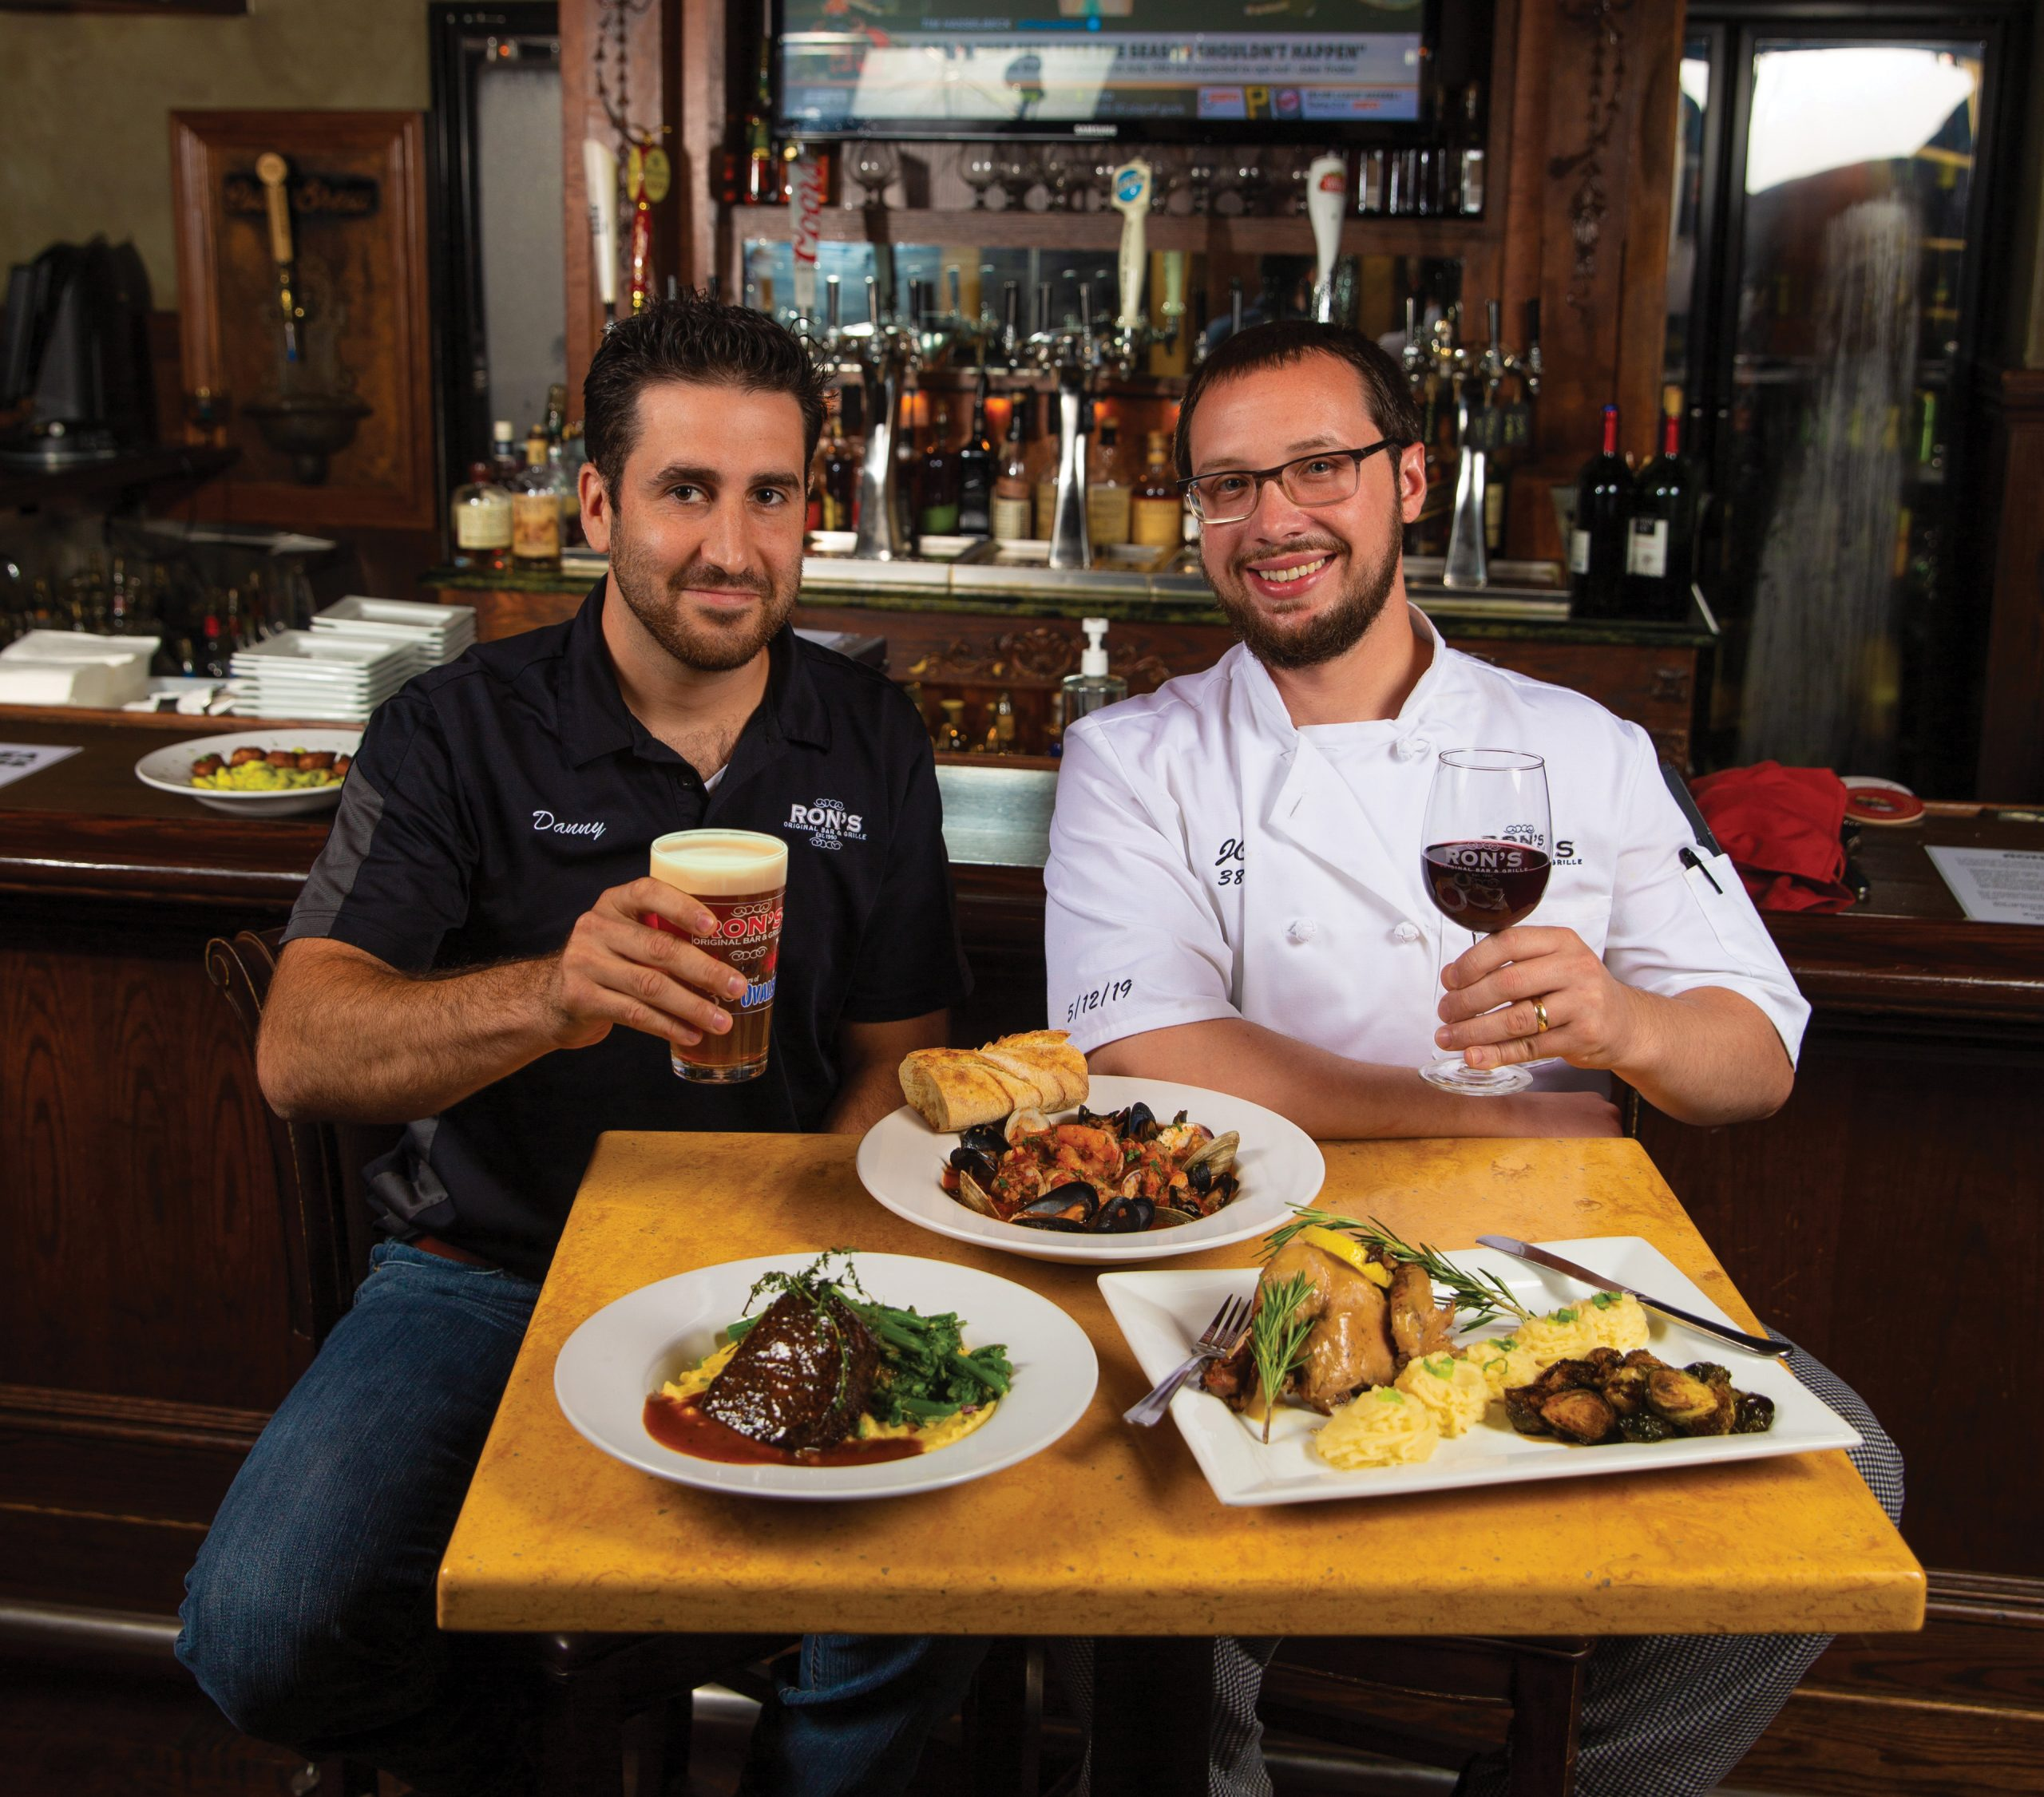 Amid the Virus: Ron's Original Bar & Grille Gets Better at Getting Better